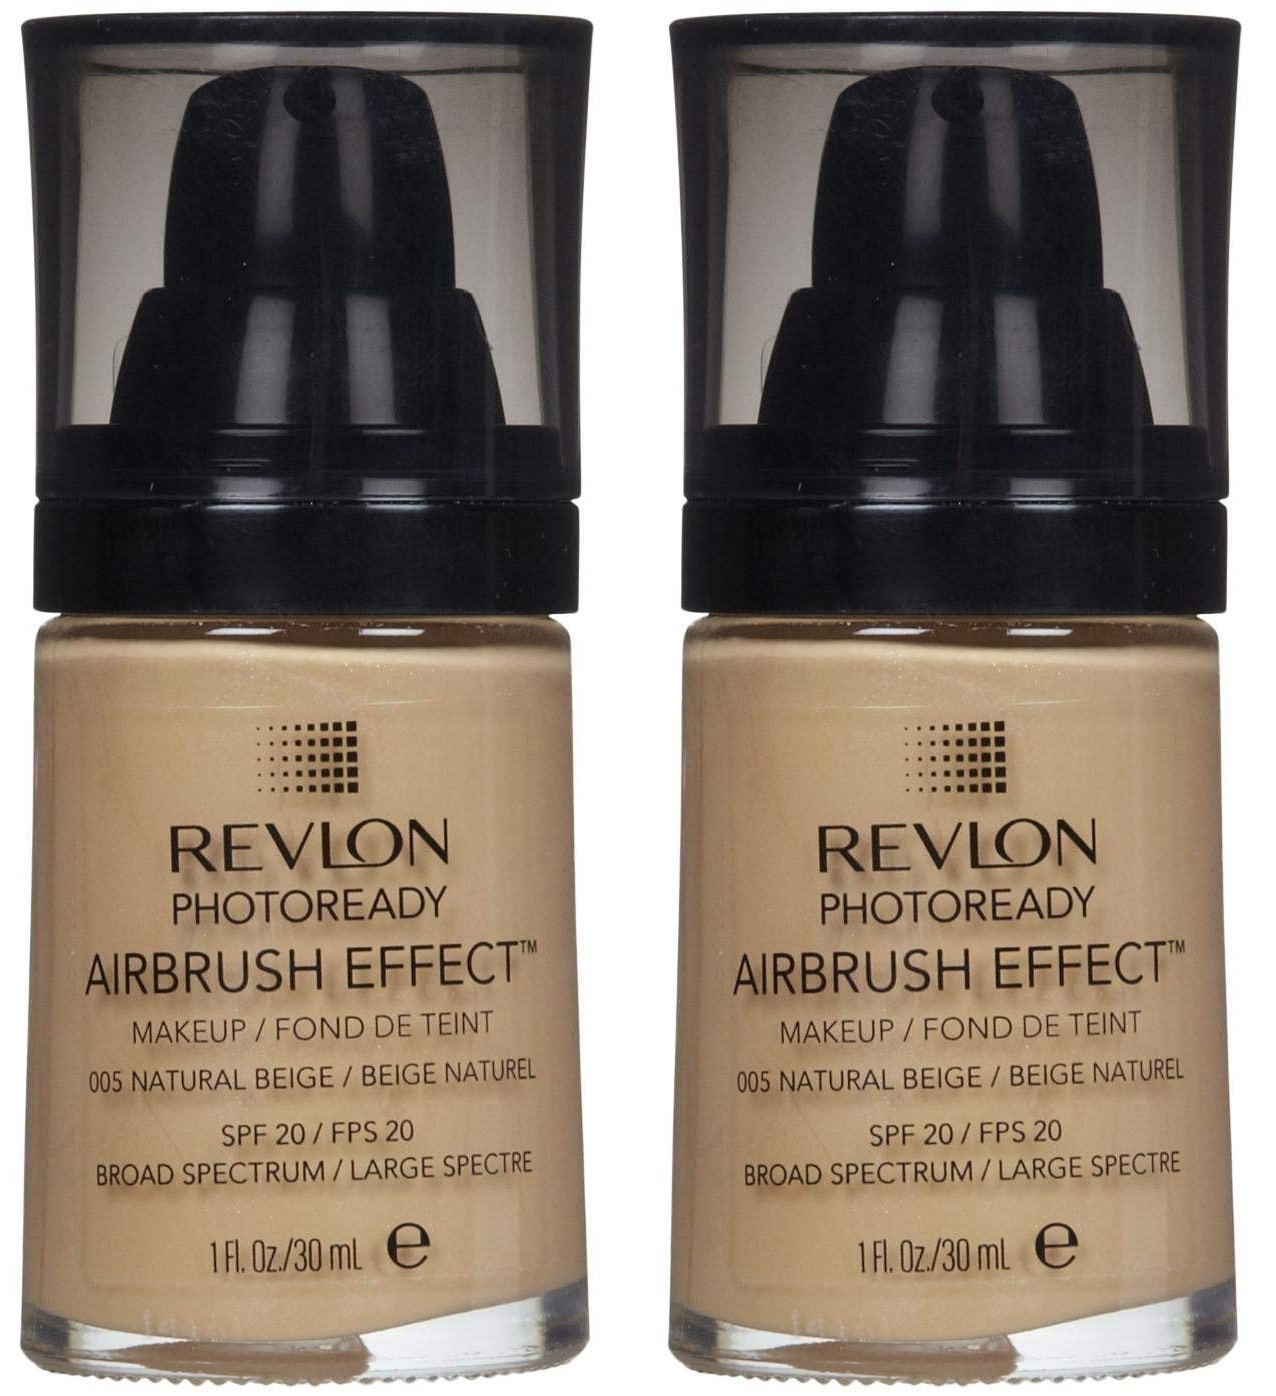 Revlon Photoready Airbrush Effect Makeup Foundation Natural Beige #005 (Pack of 2)